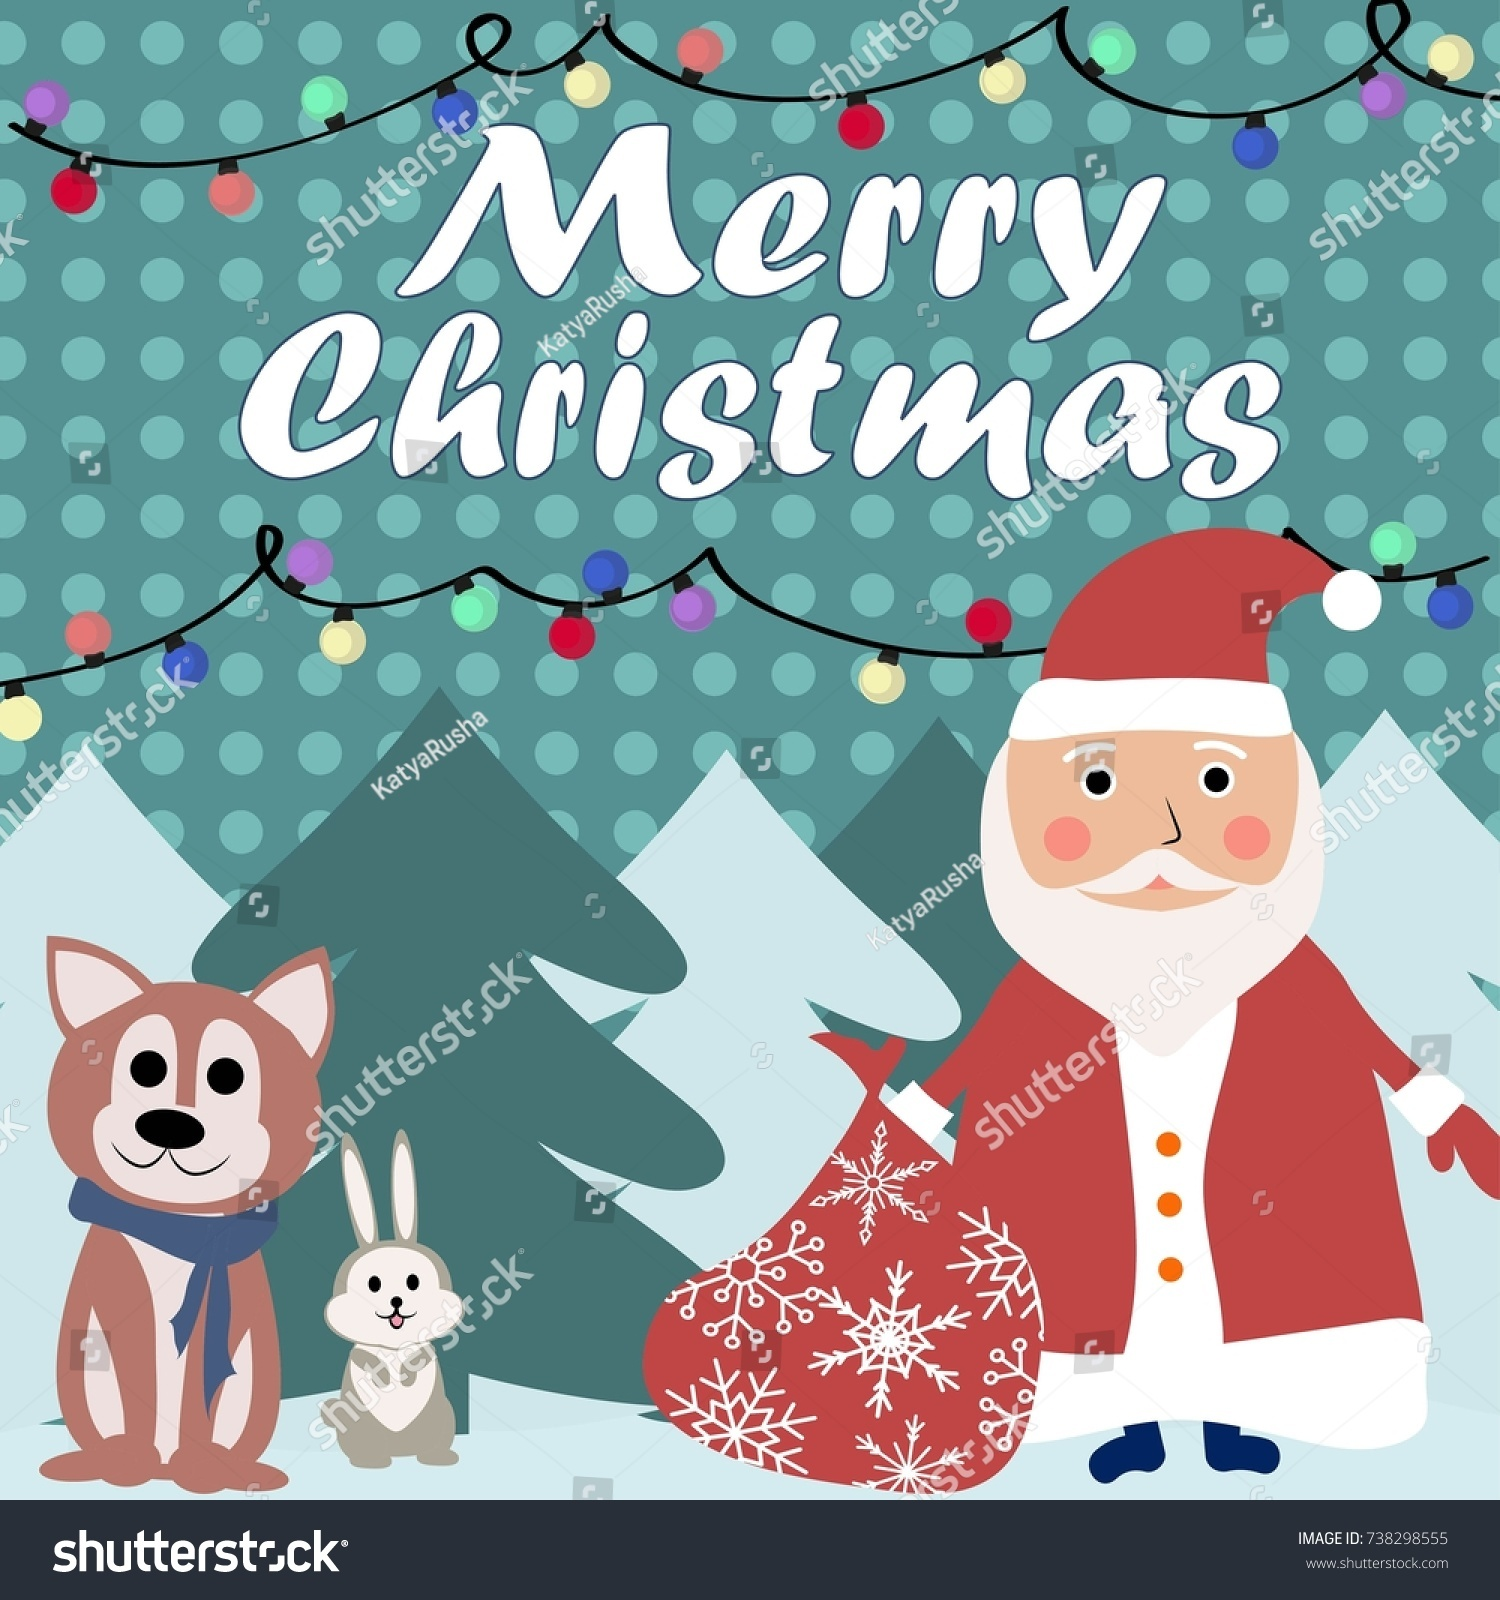 Merry Christmas Card 2018 Stock Vector (Royalty Free) 738298555 ...